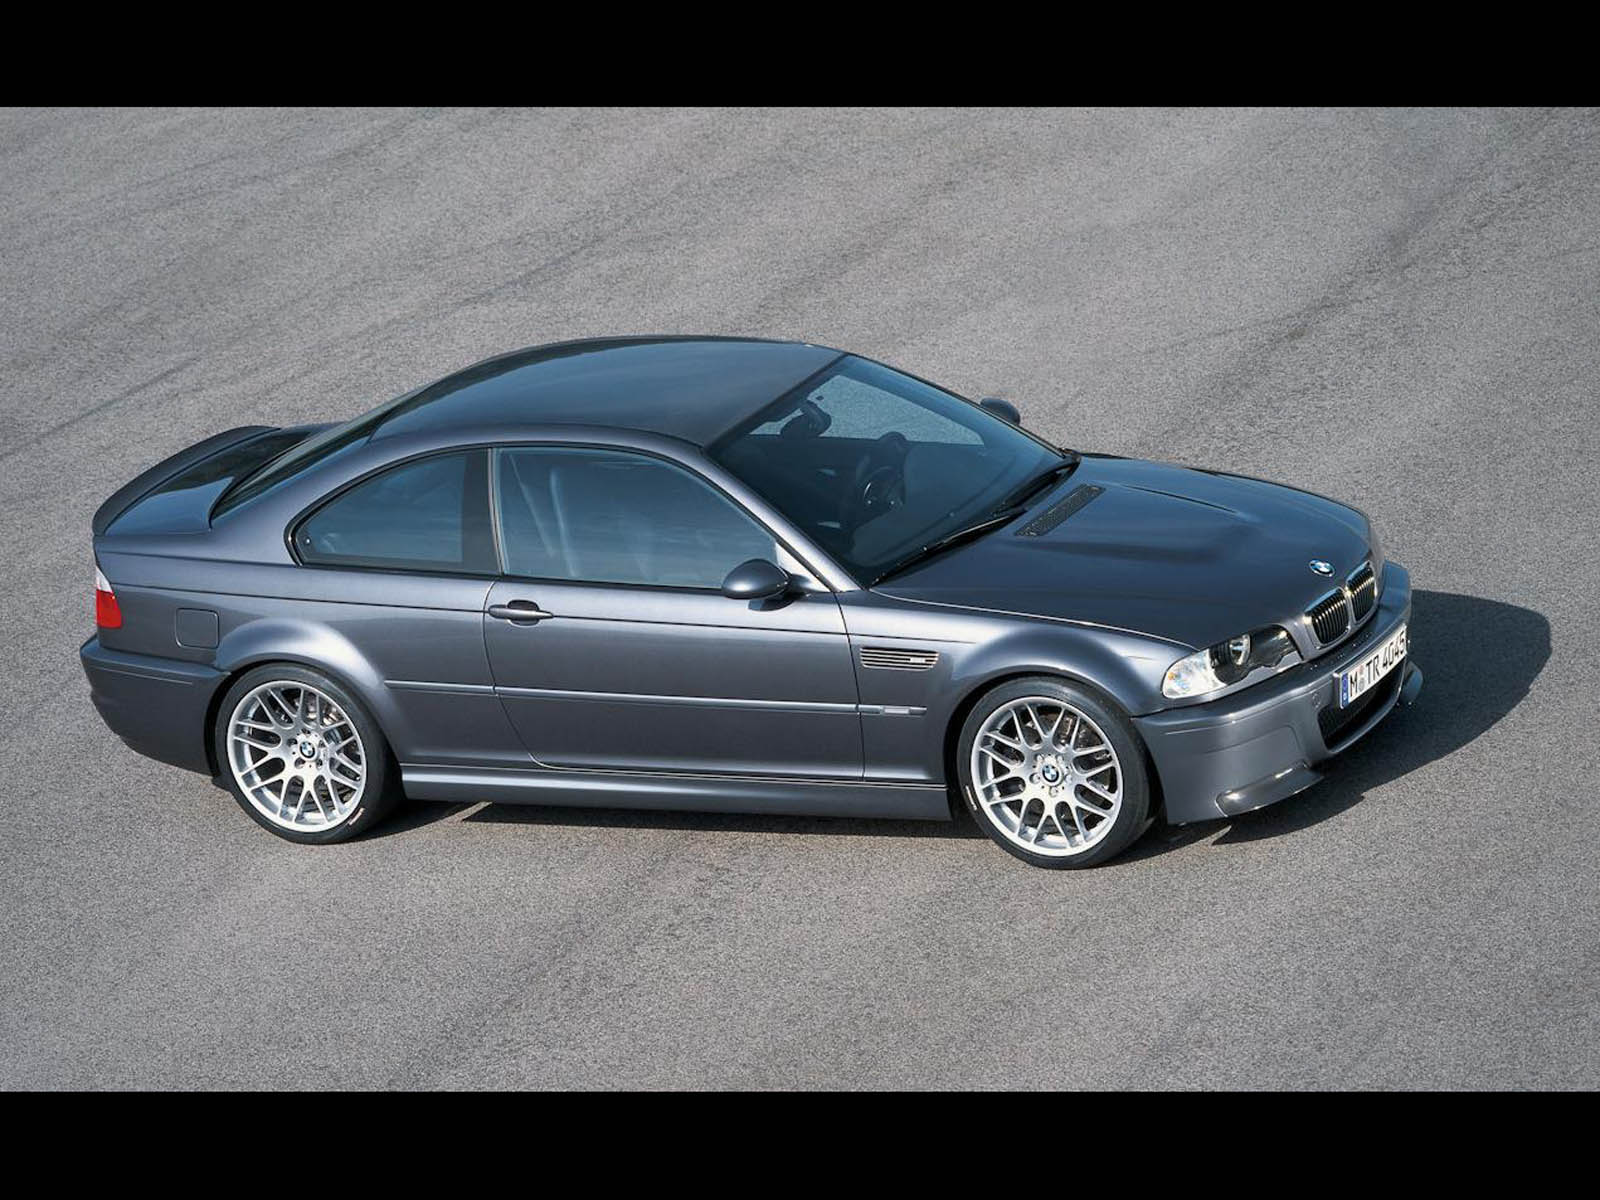 wallpaper bmw m3 e46 csl car wallpapers. Black Bedroom Furniture Sets. Home Design Ideas